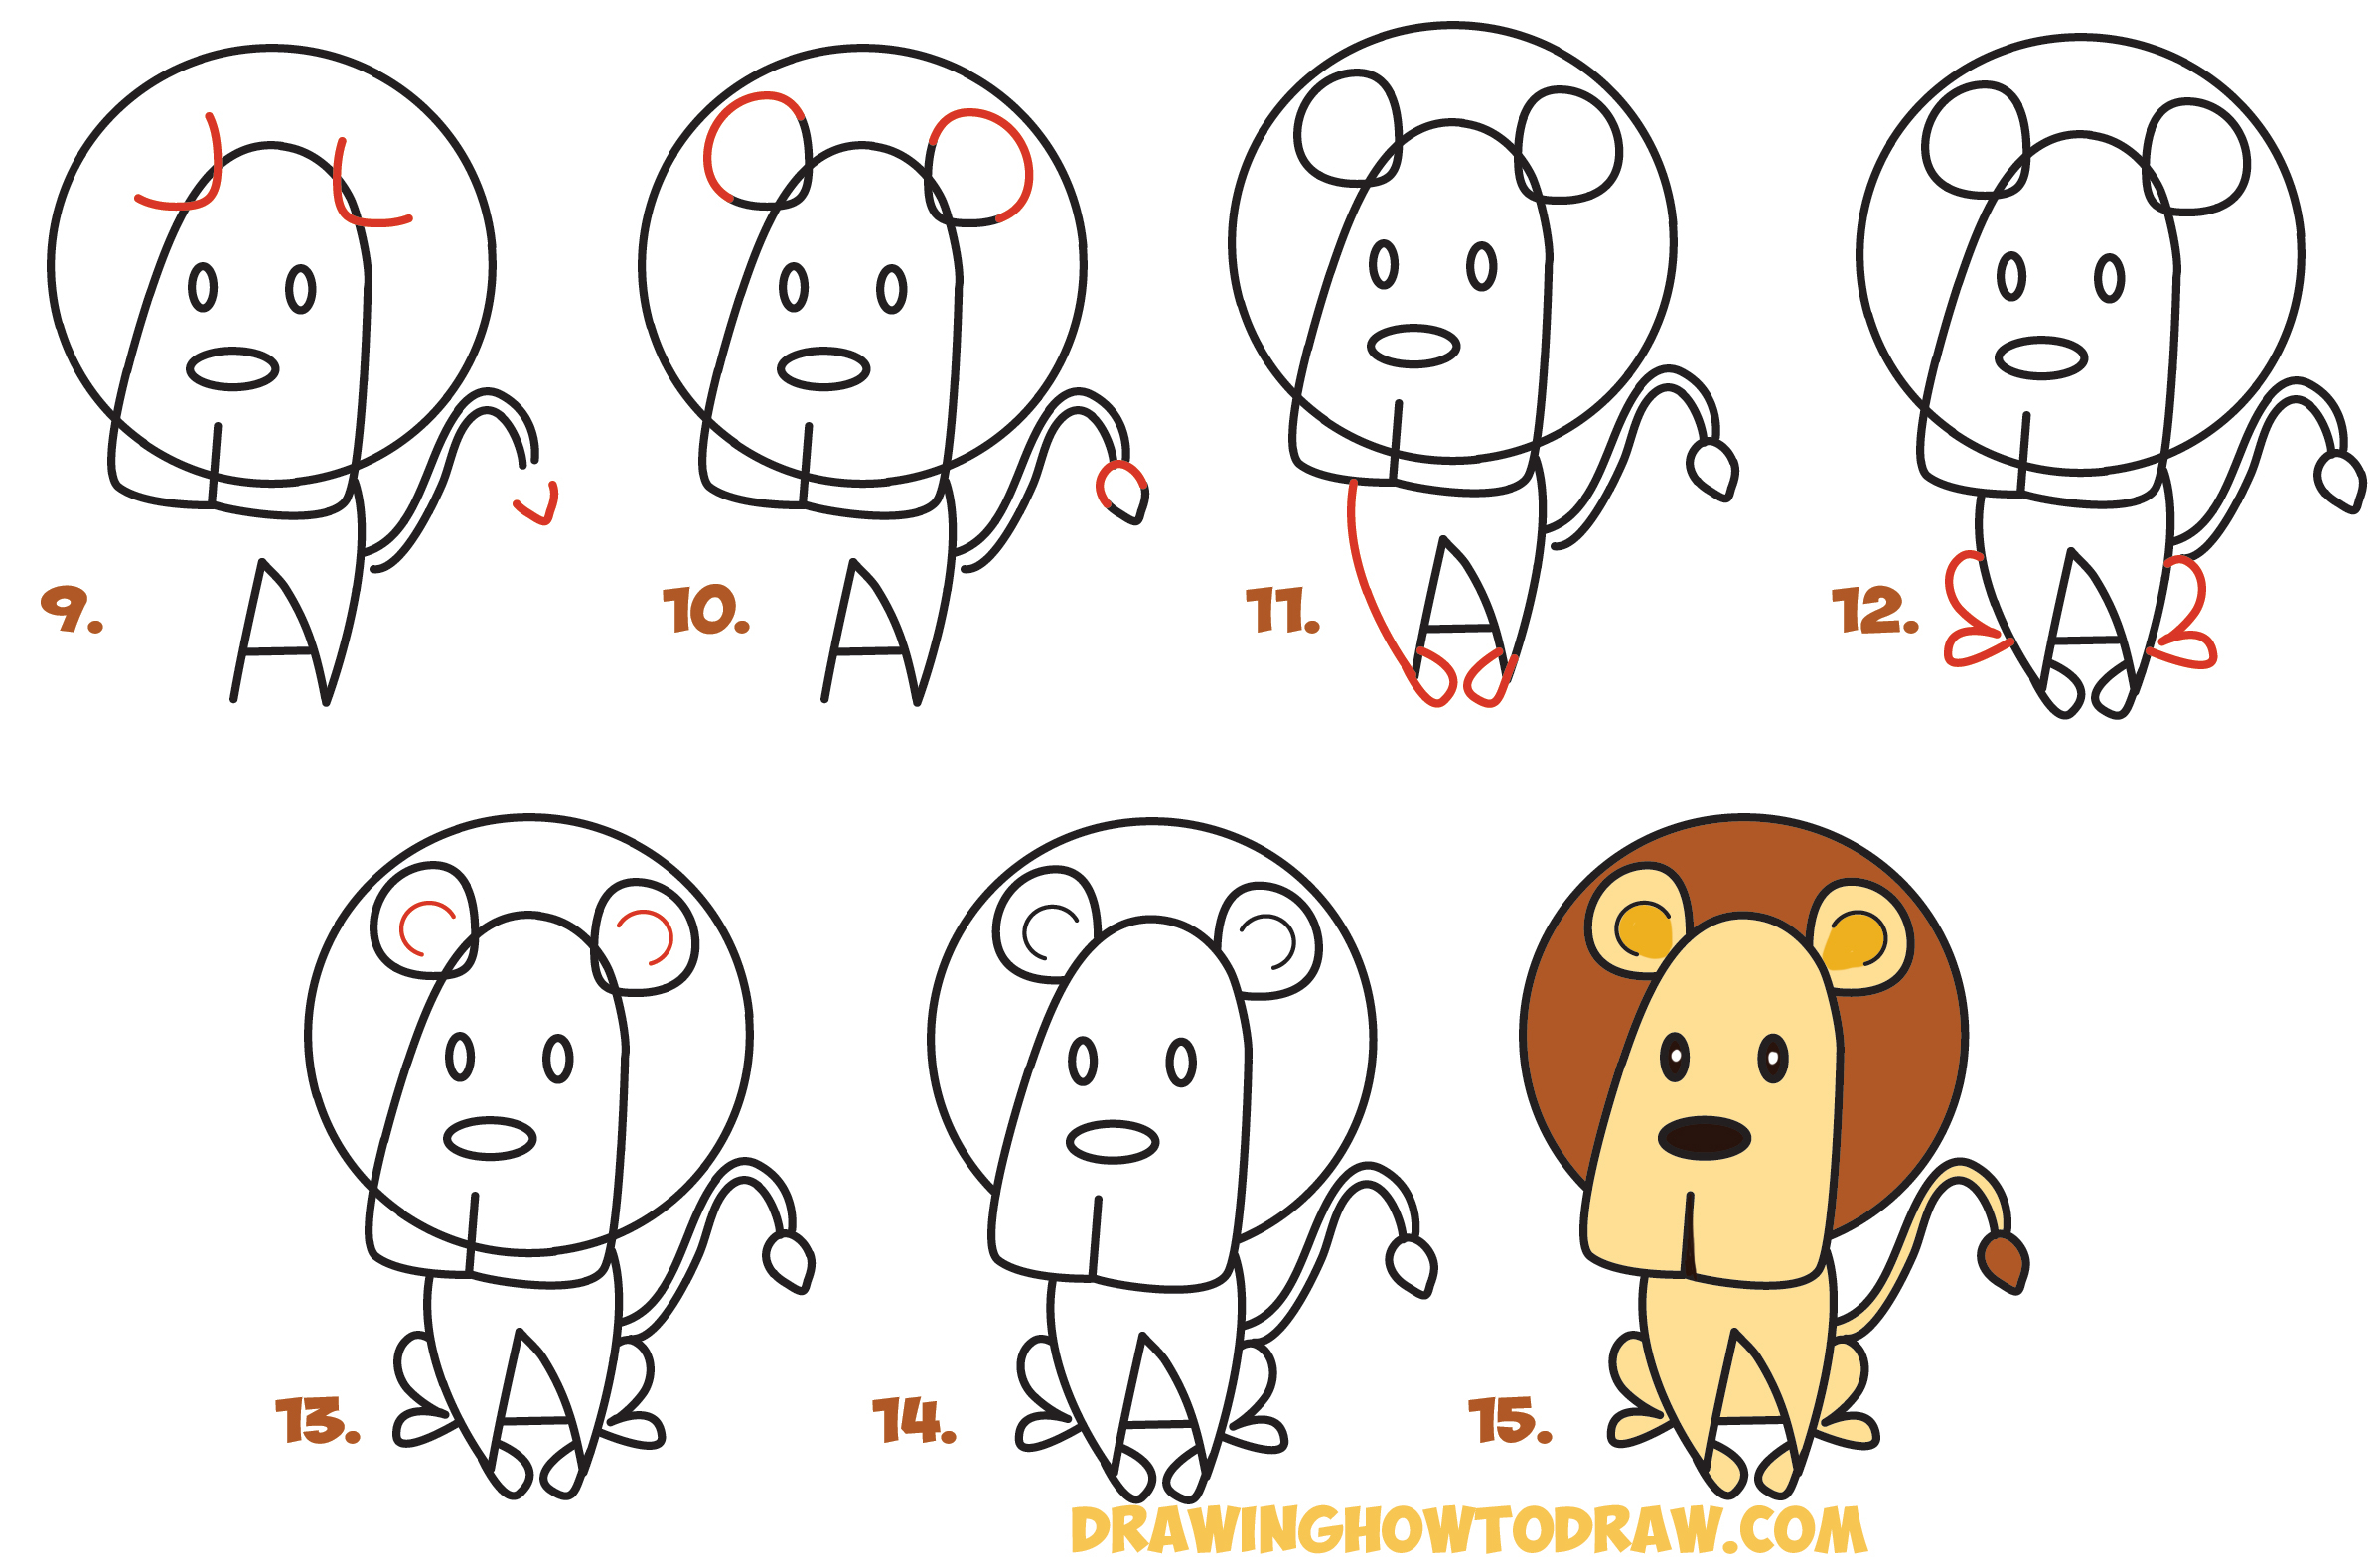 2396x1578 Lion Drawings Easy How To Draw Cartoon Lion From The Word Easy